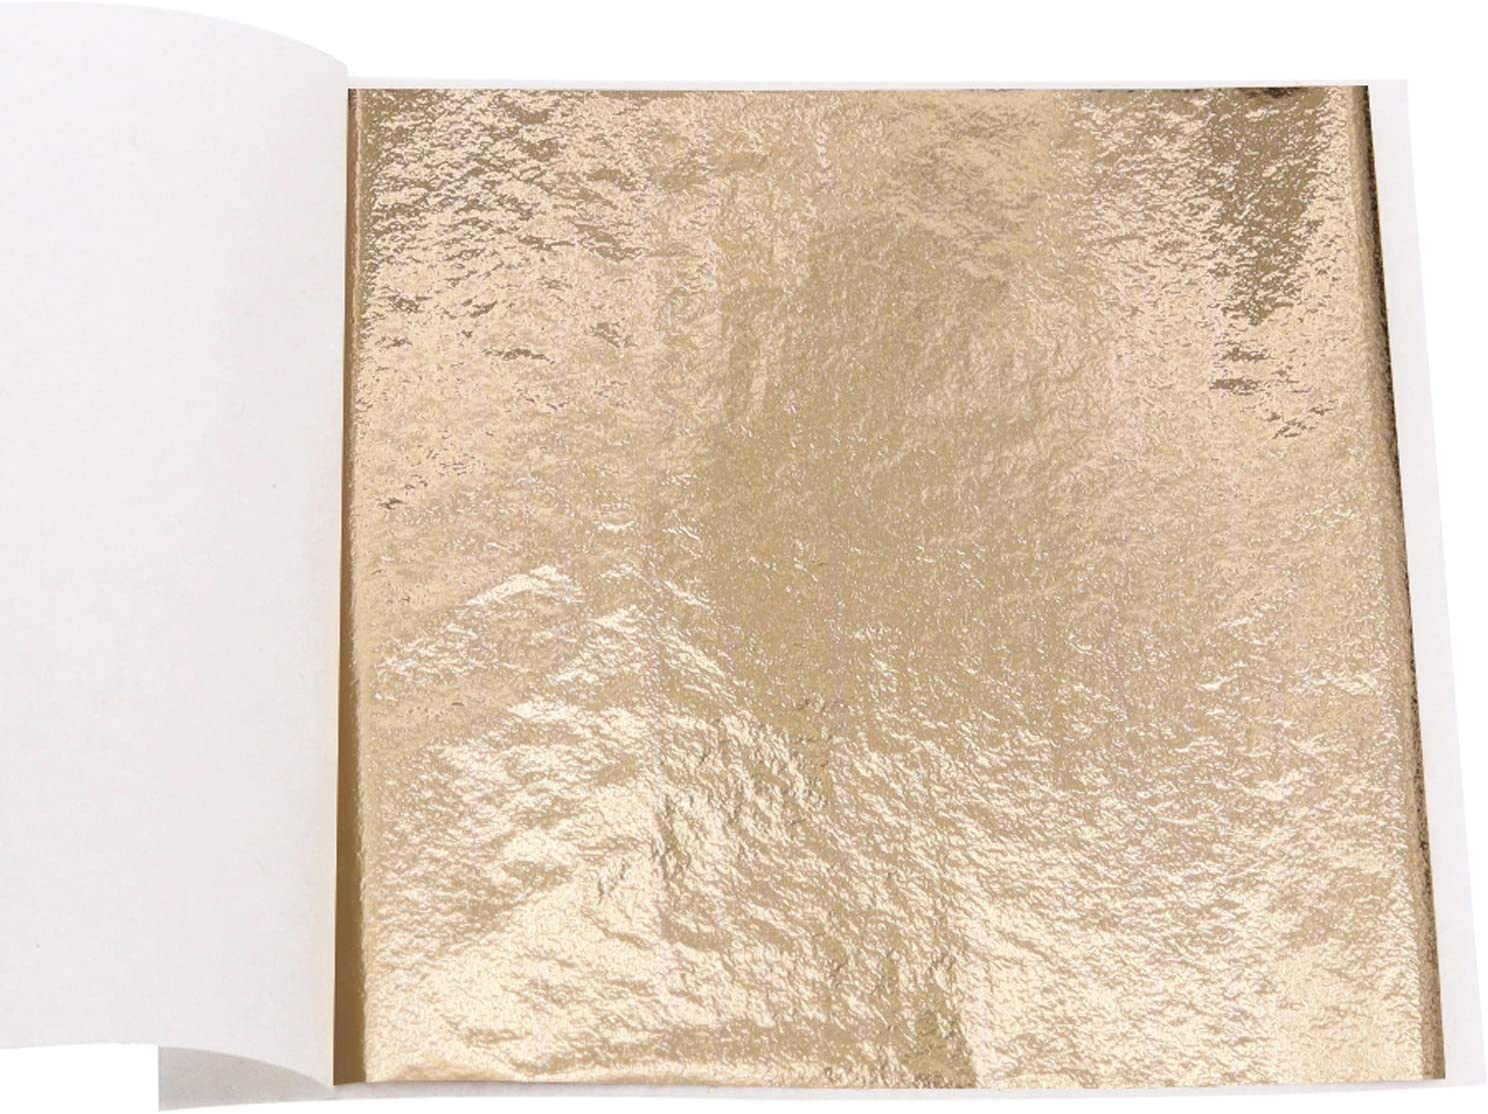 Imitation Gold Leaf Sheets - KINNO Champagne Gold Foil Multipurpose for Home, Wall, Frame, Ceiling, Furniture Decoration, 100 Sheets 3.15 by 3.35 Inches